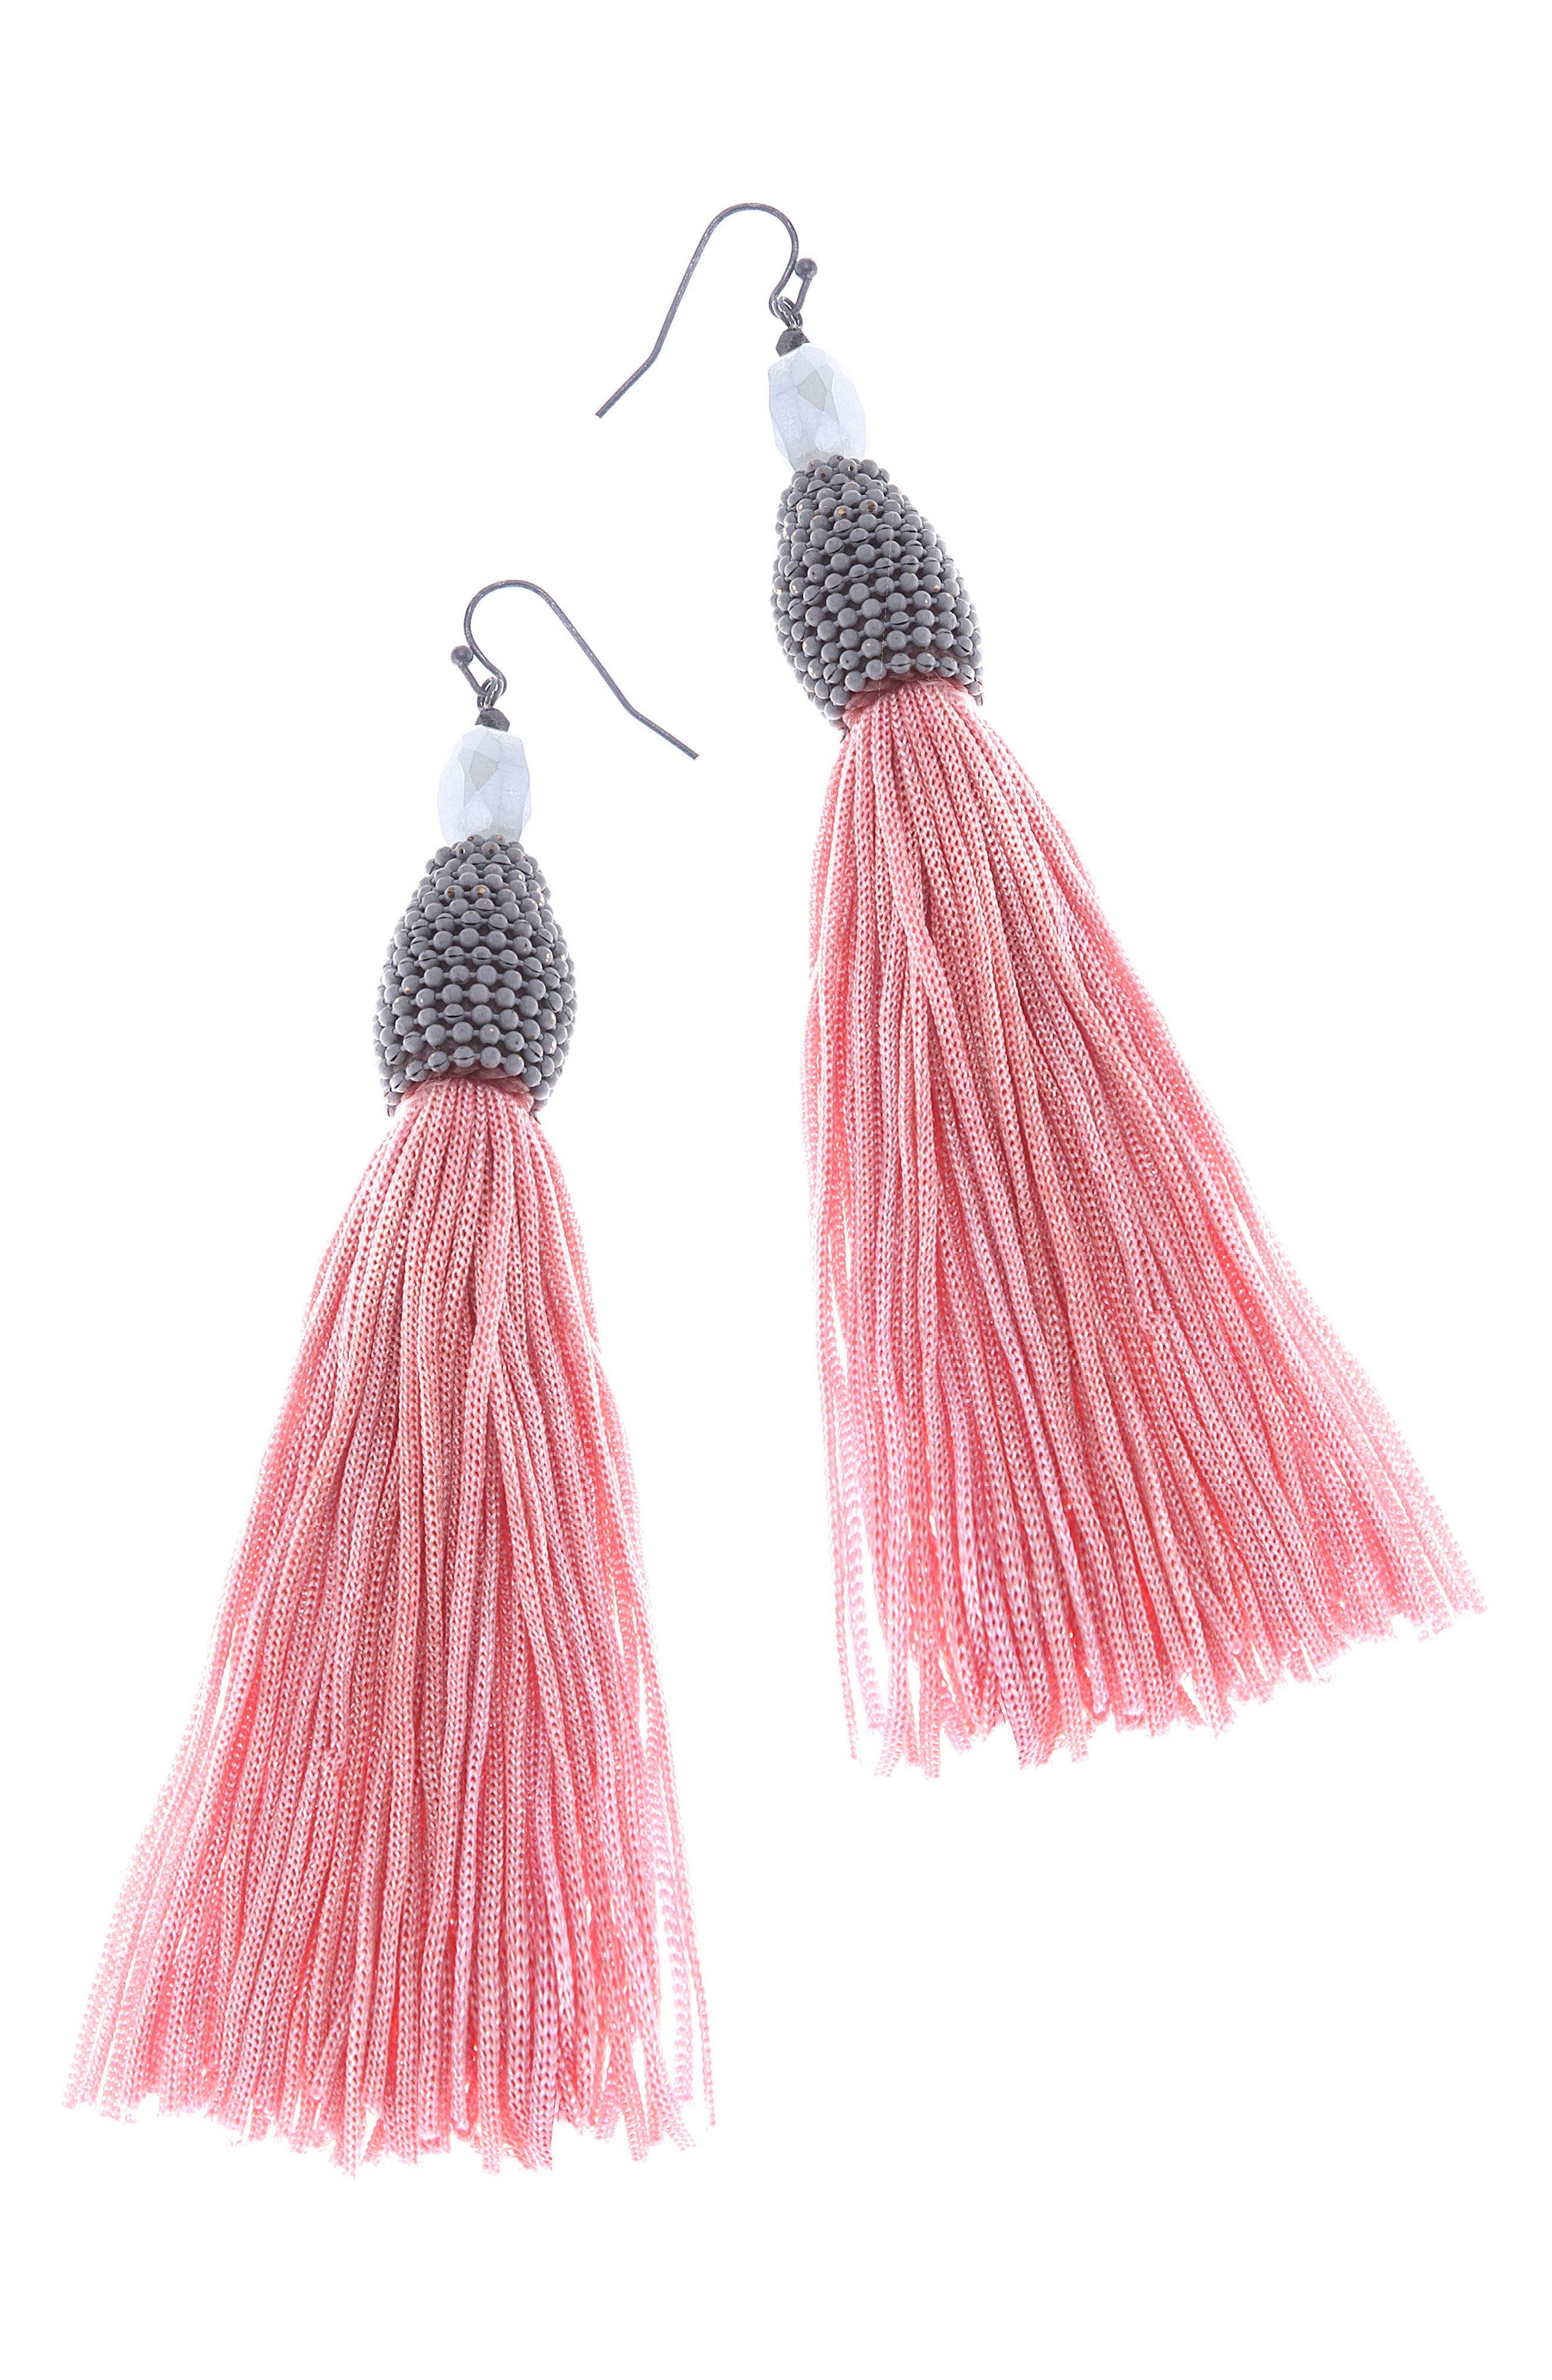 Tassel Earrings,                             Main thumbnail 1, color,                             650